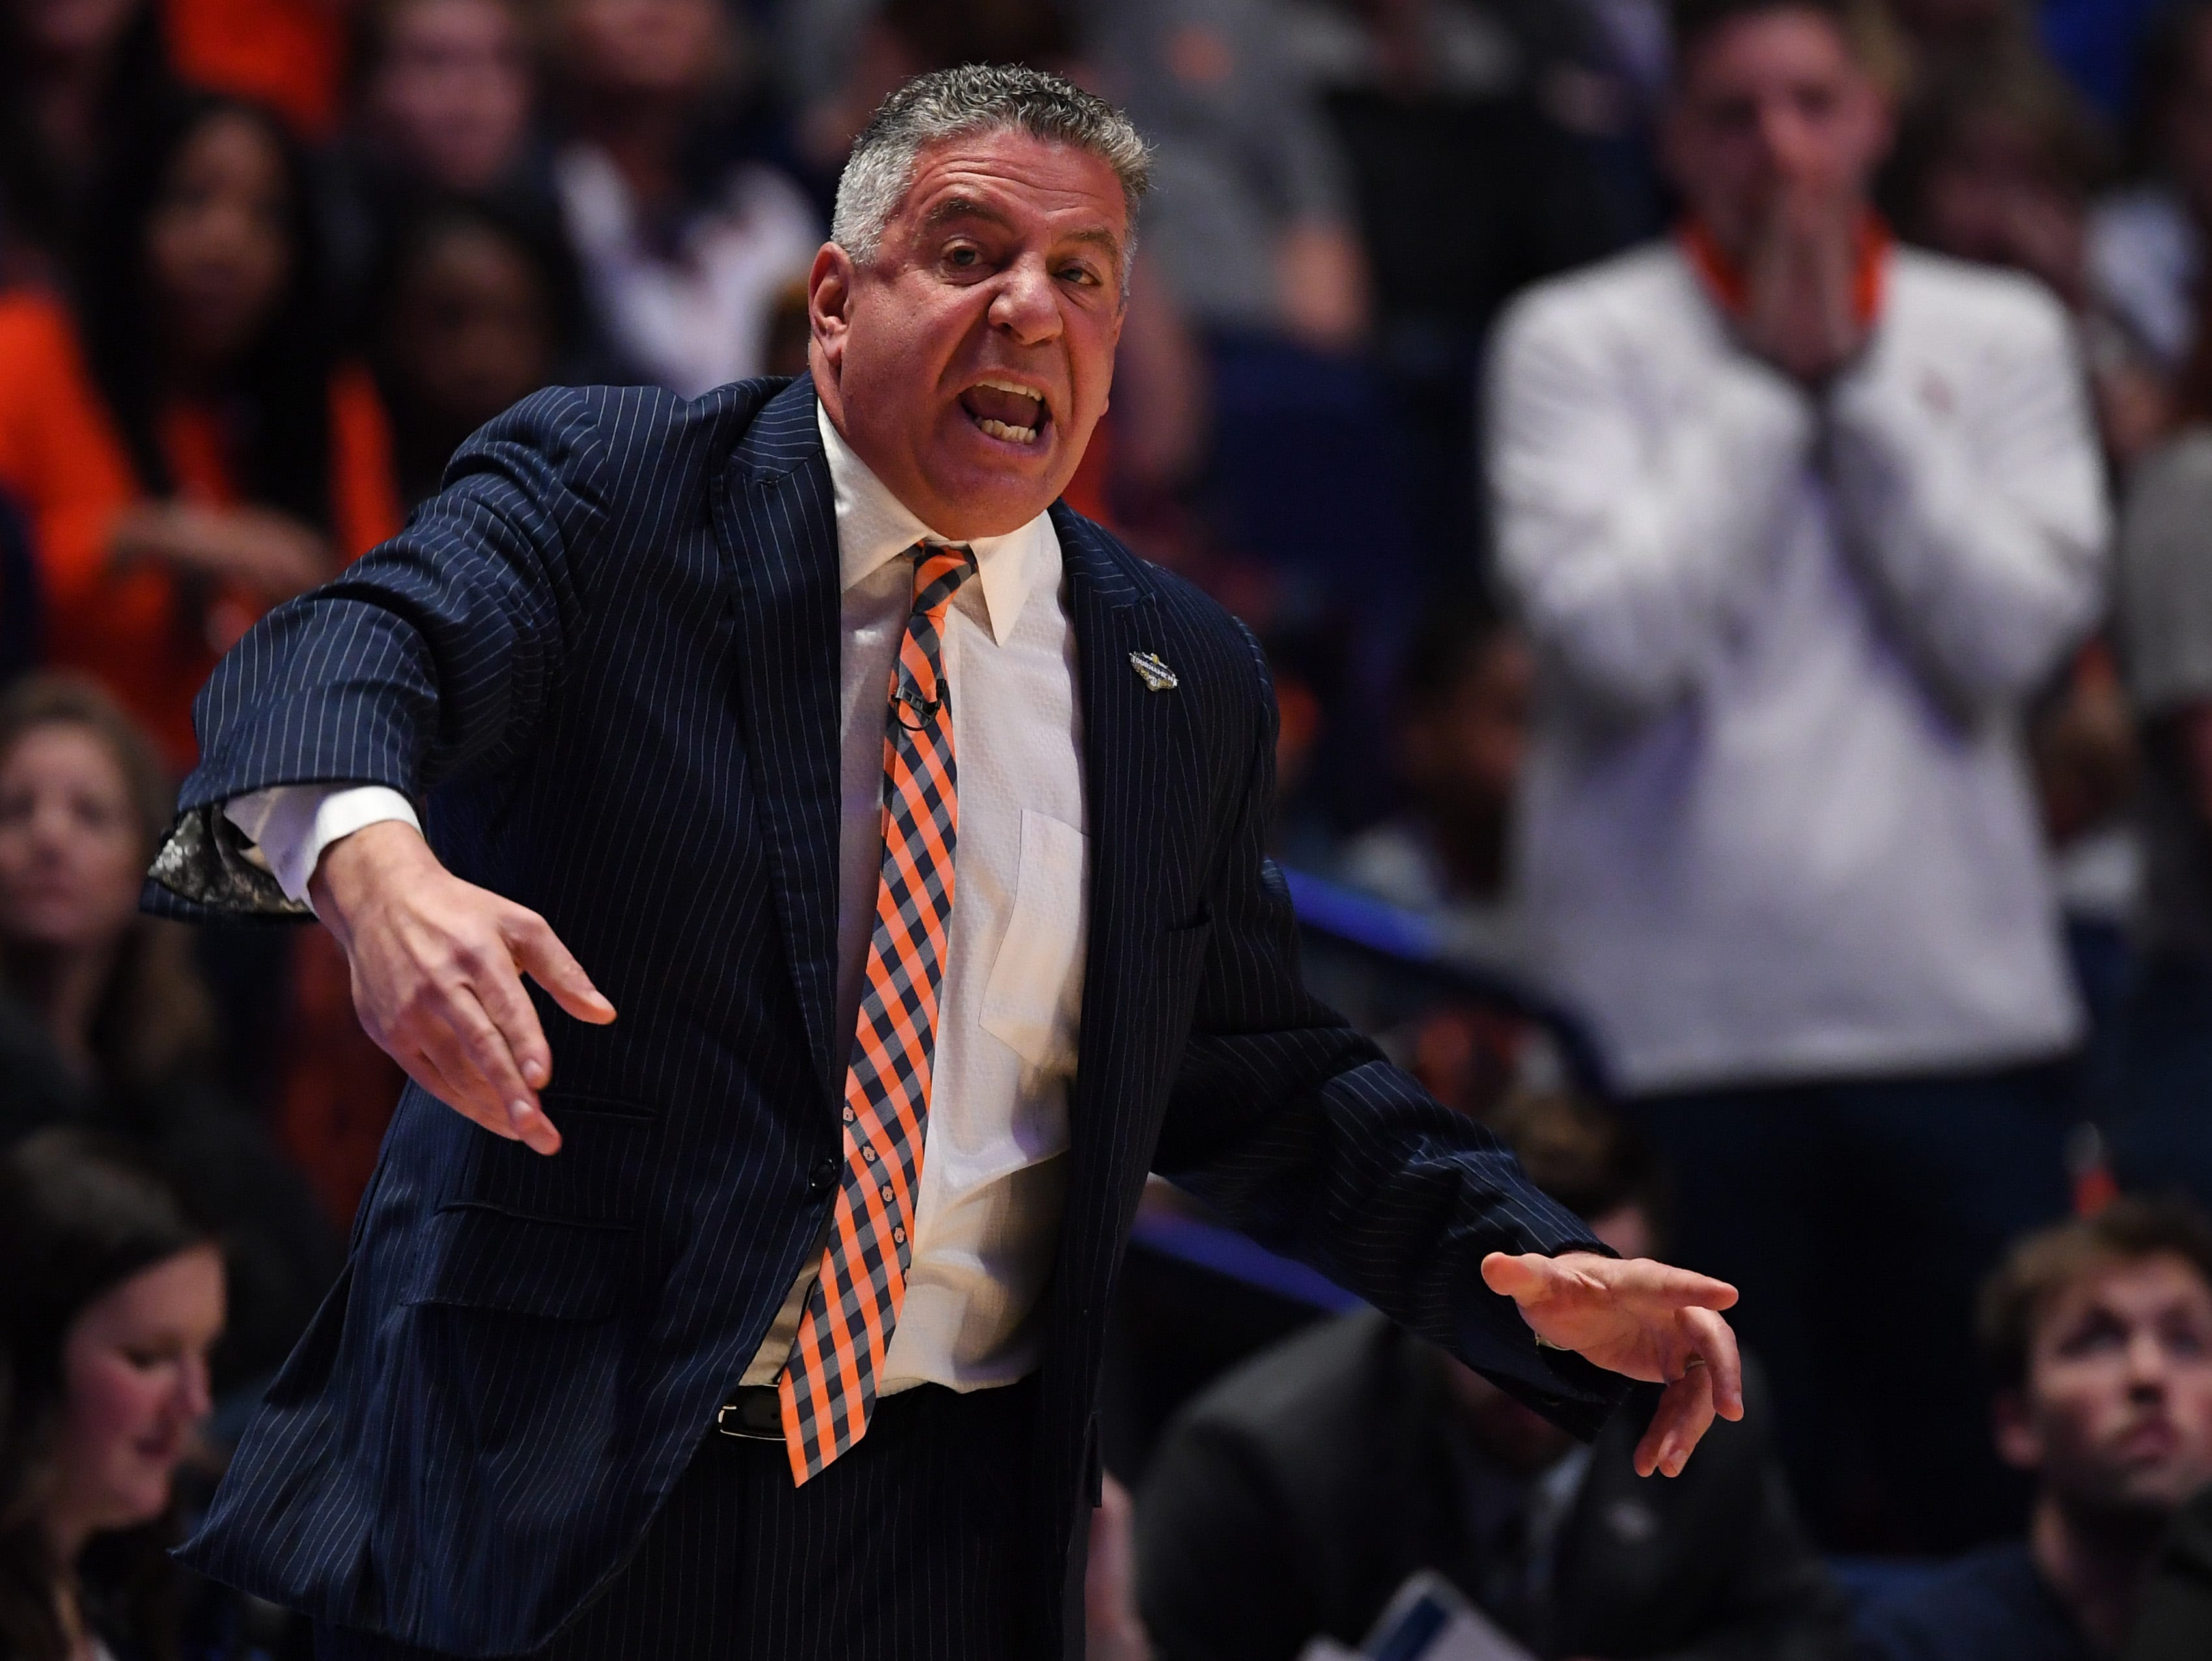 Mar 14, 2019; Nashville, TN, USA; Auburn Tigers head coach Bruce Pearl yells from the sidelines against the Missouri Tigers during the first half of the SEC conference tournament at Bridgestone Arena. Mandatory Credit: Christopher Hanewinckel-USA TODAY Sports